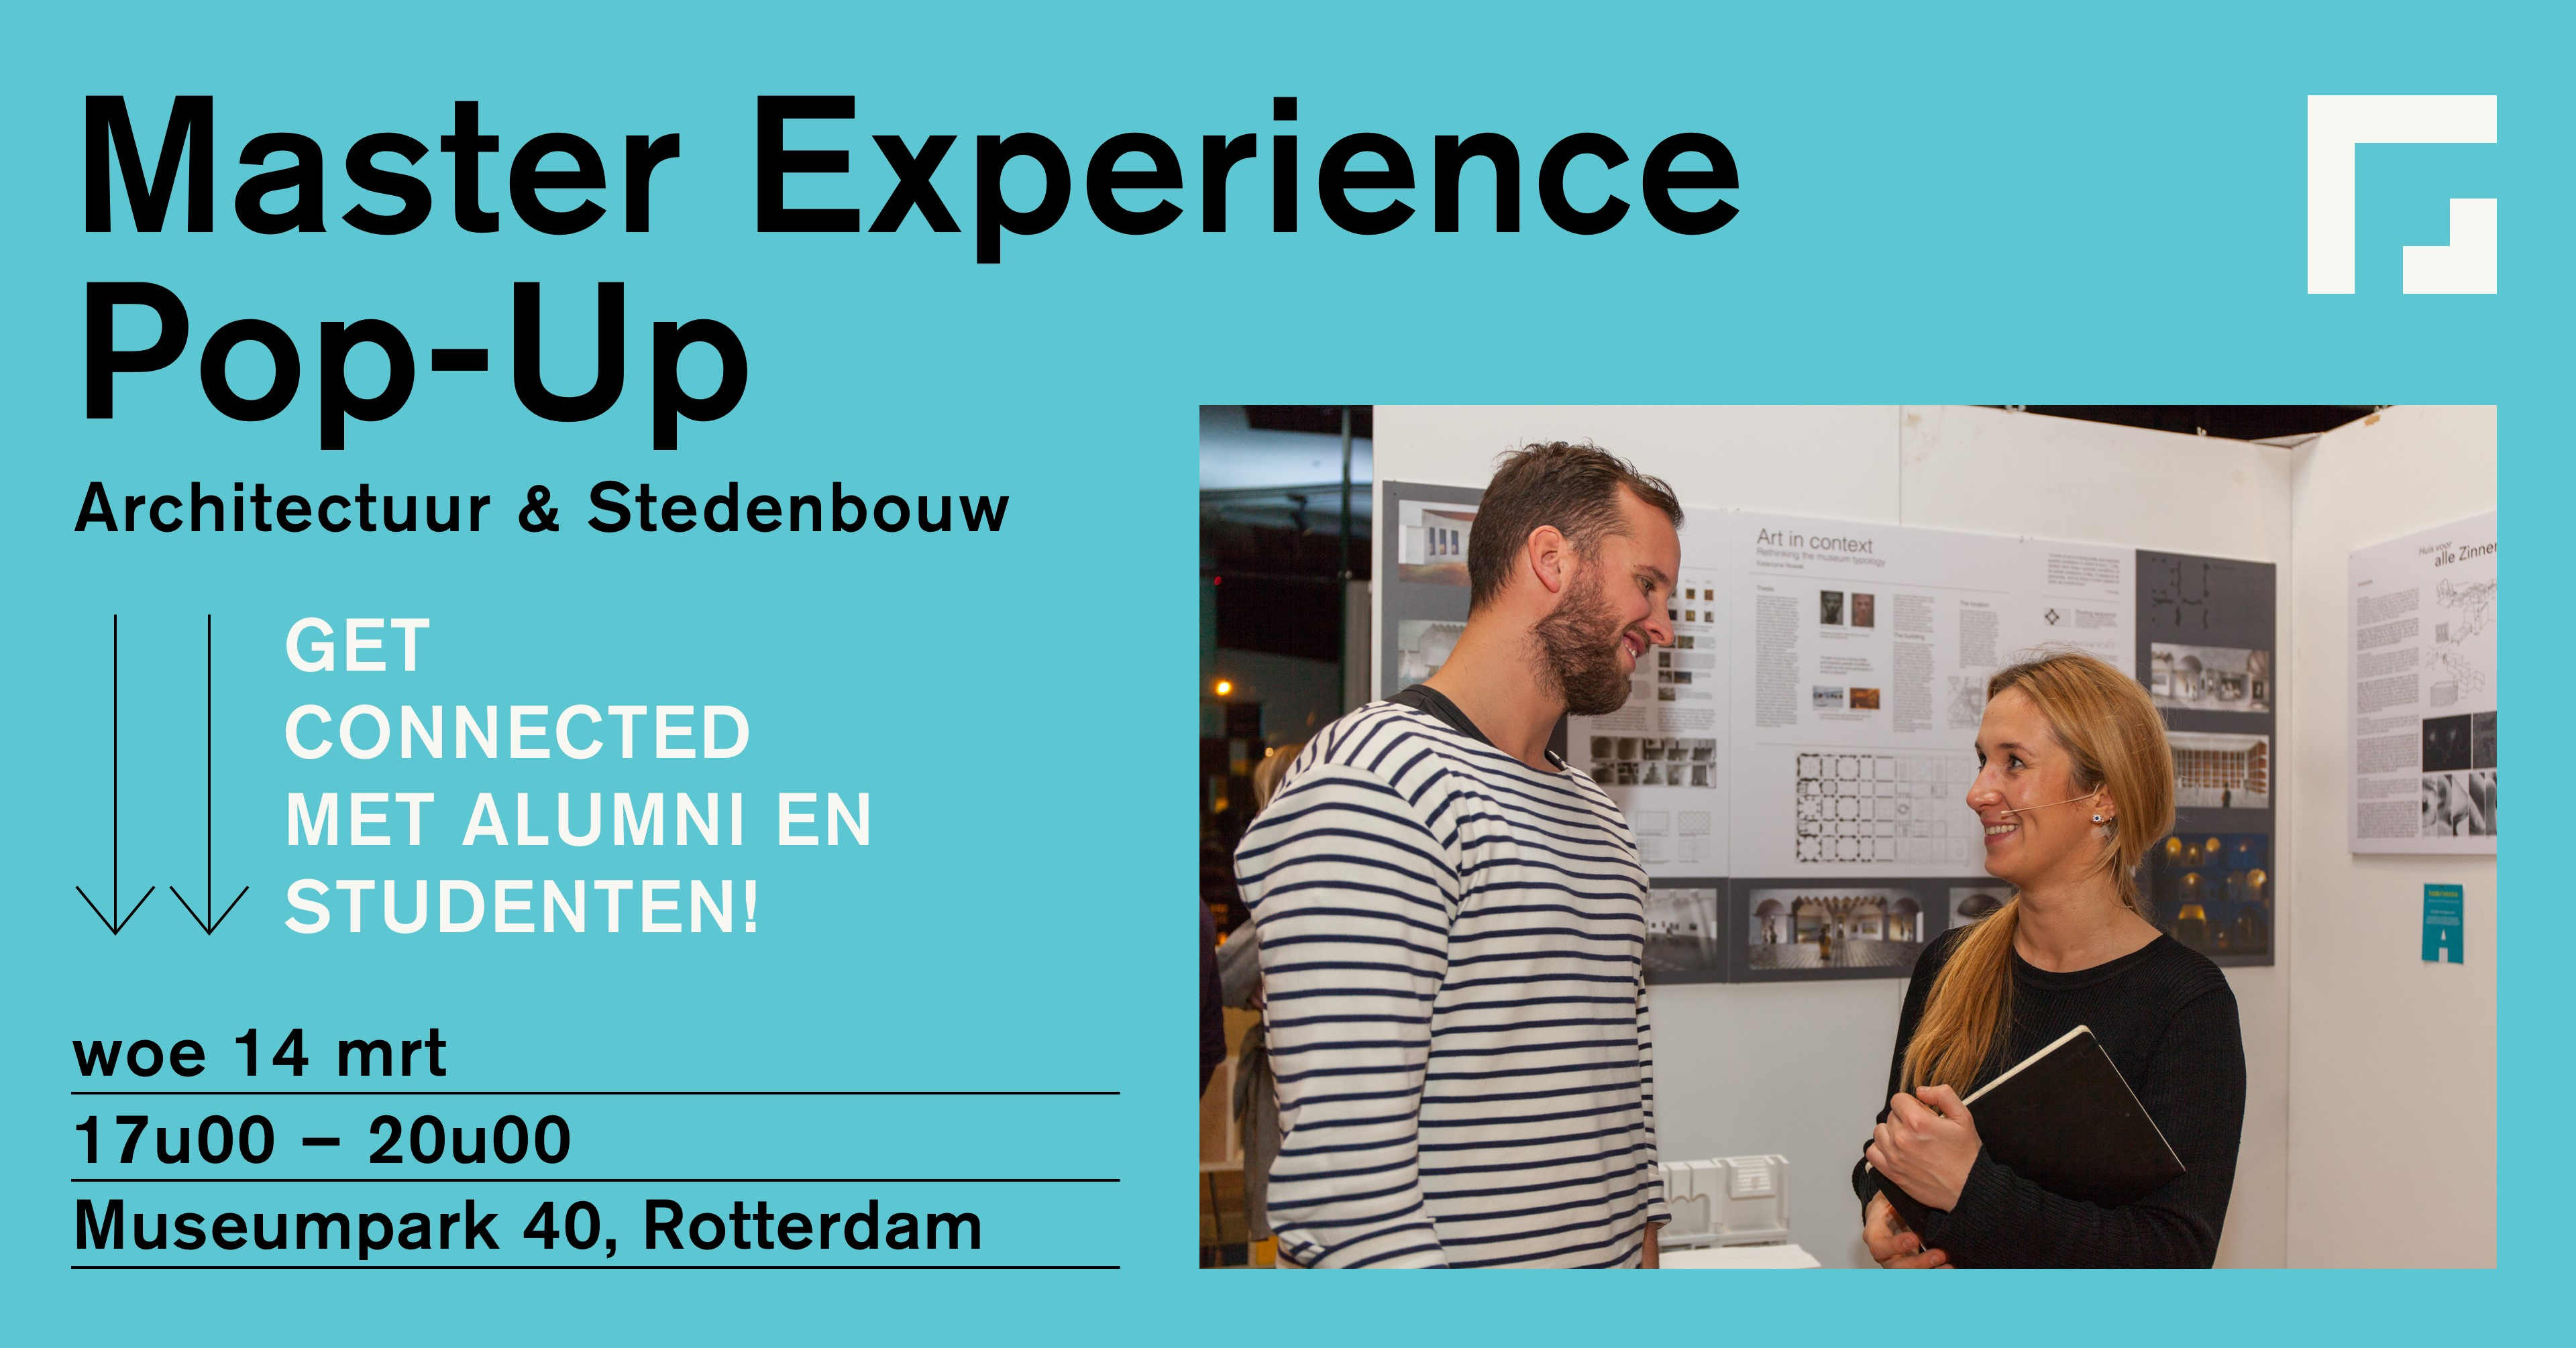 Master Experience Pop-Up